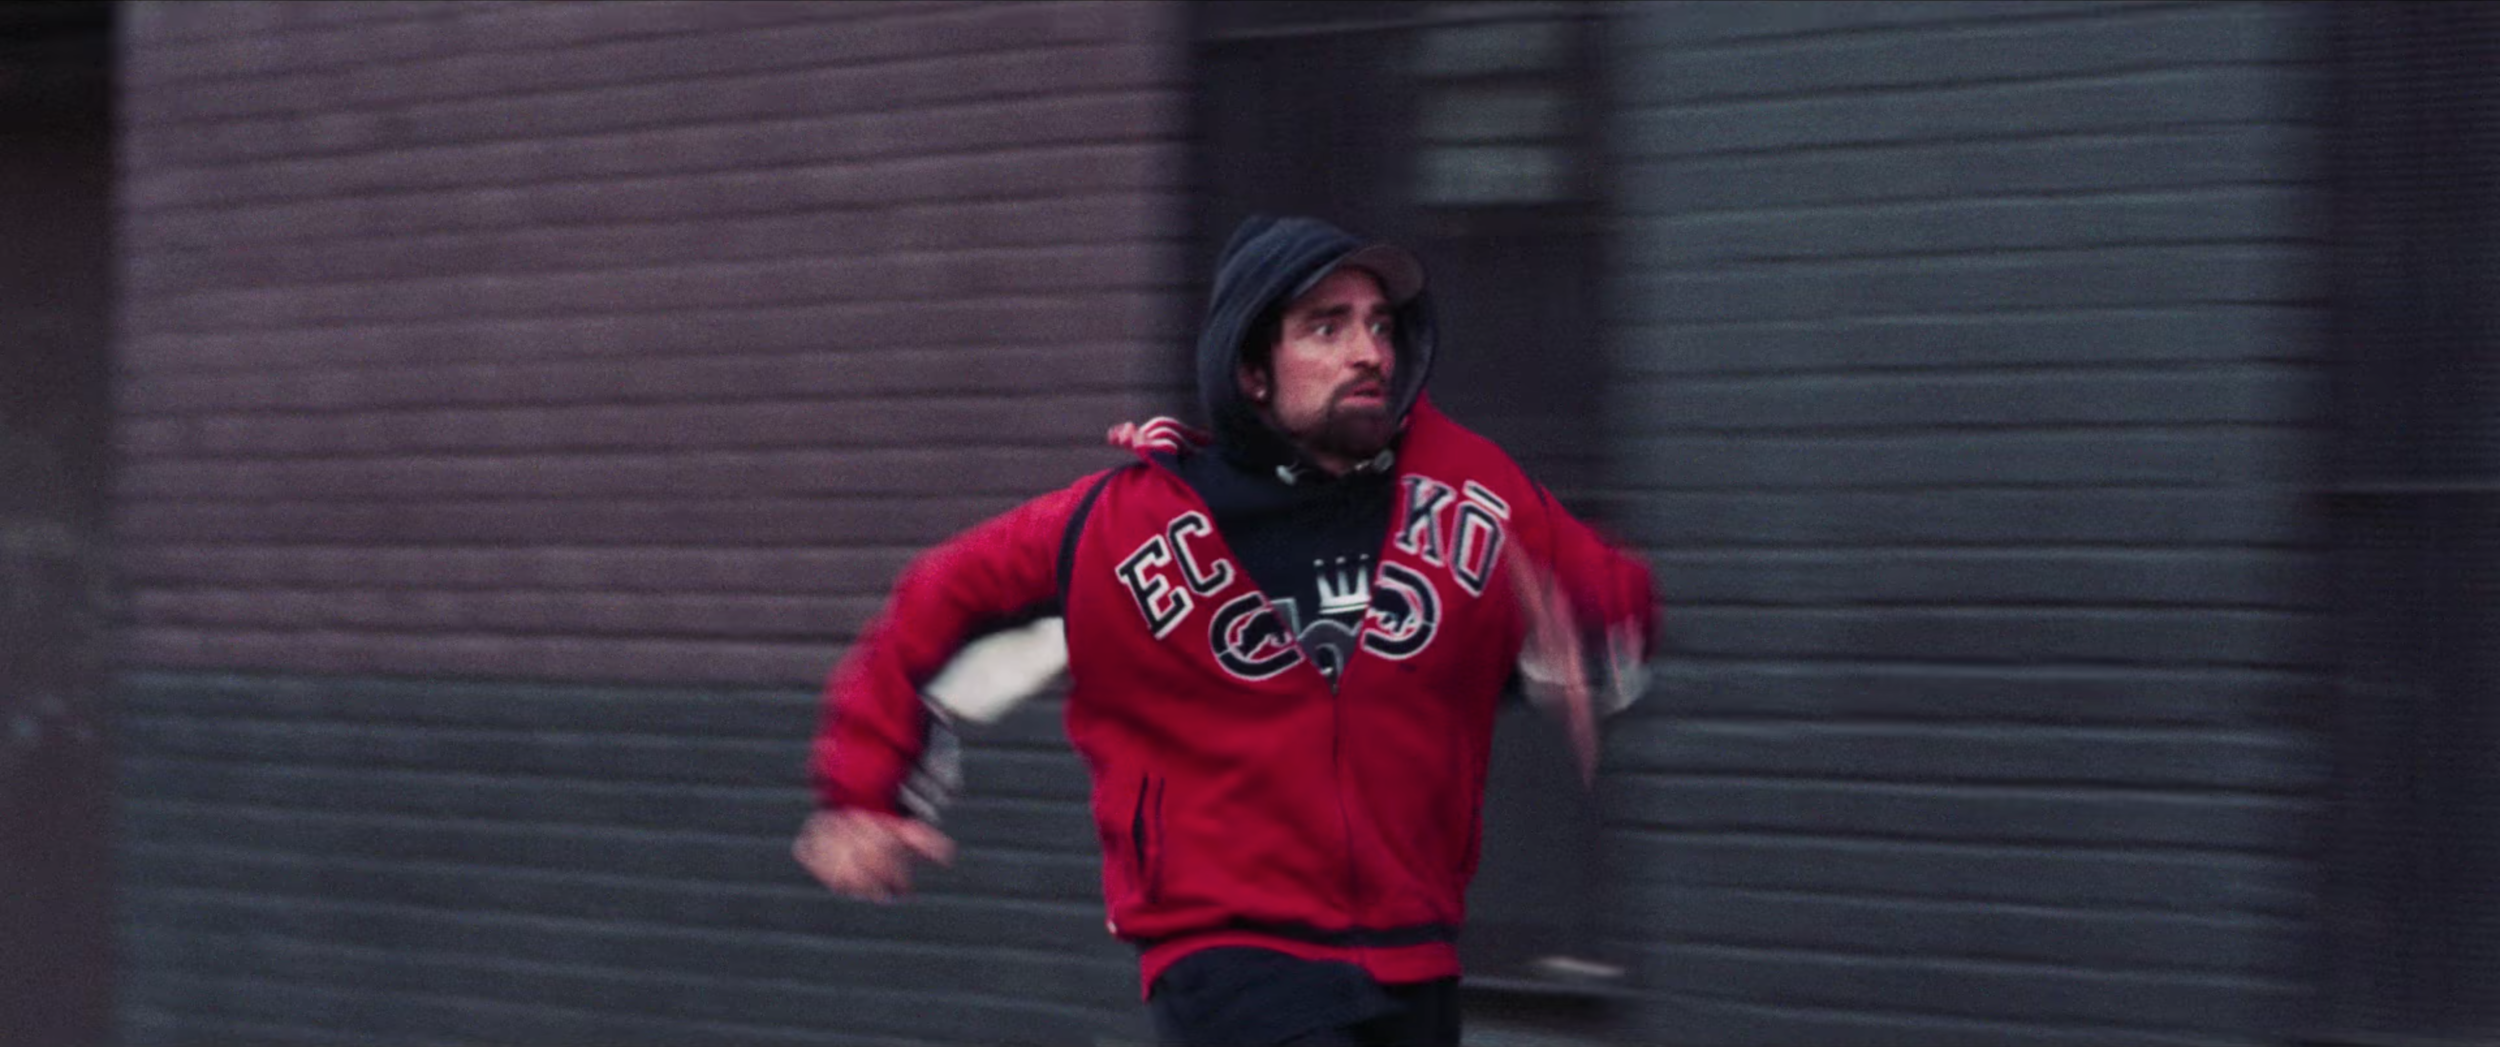 2goodtime.png